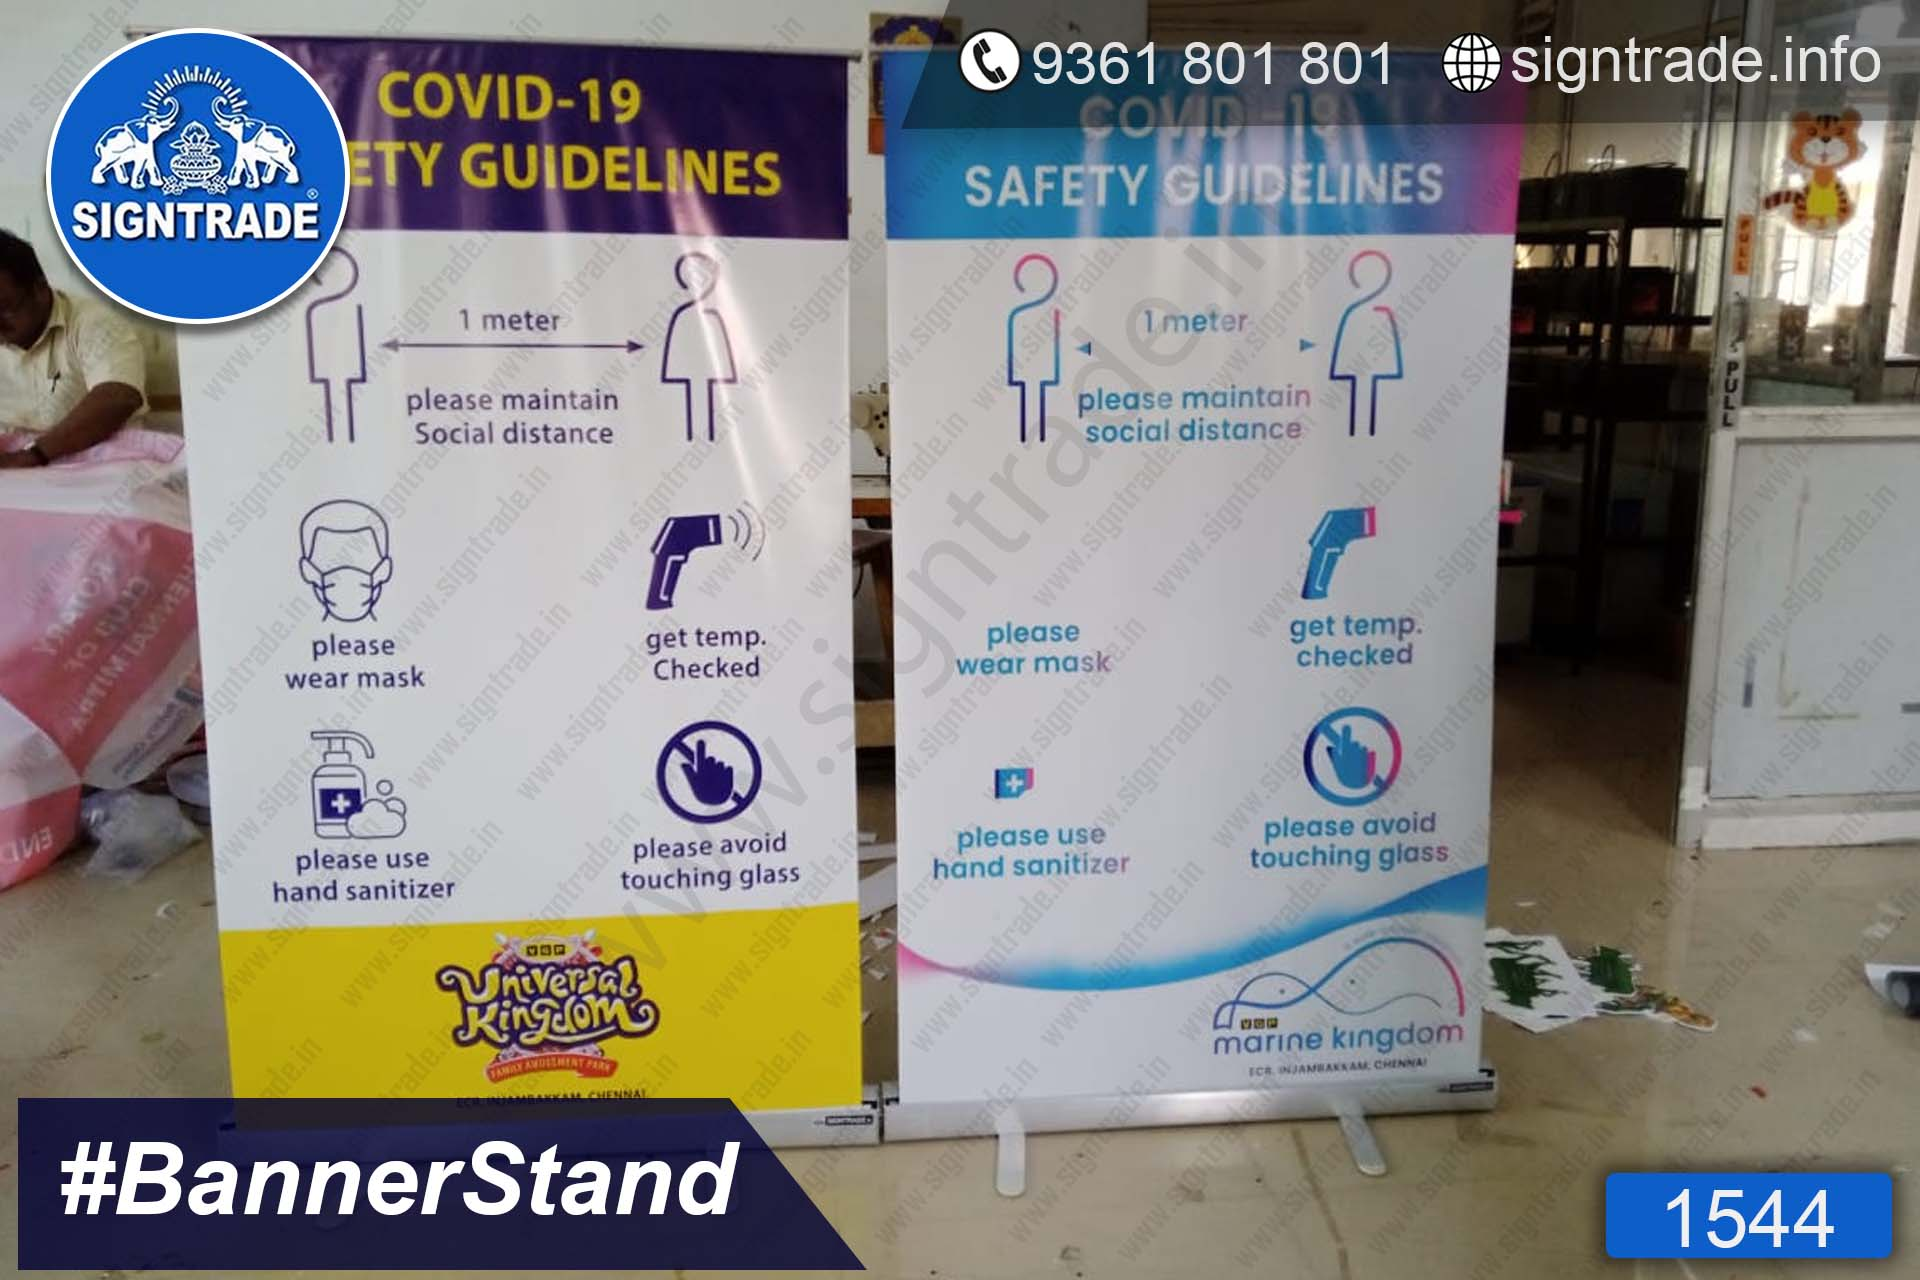 VGP Universal Kingdom - Chennai - SIGNTRADE - Roll Up Banner Stand Manufacturers in Chennai